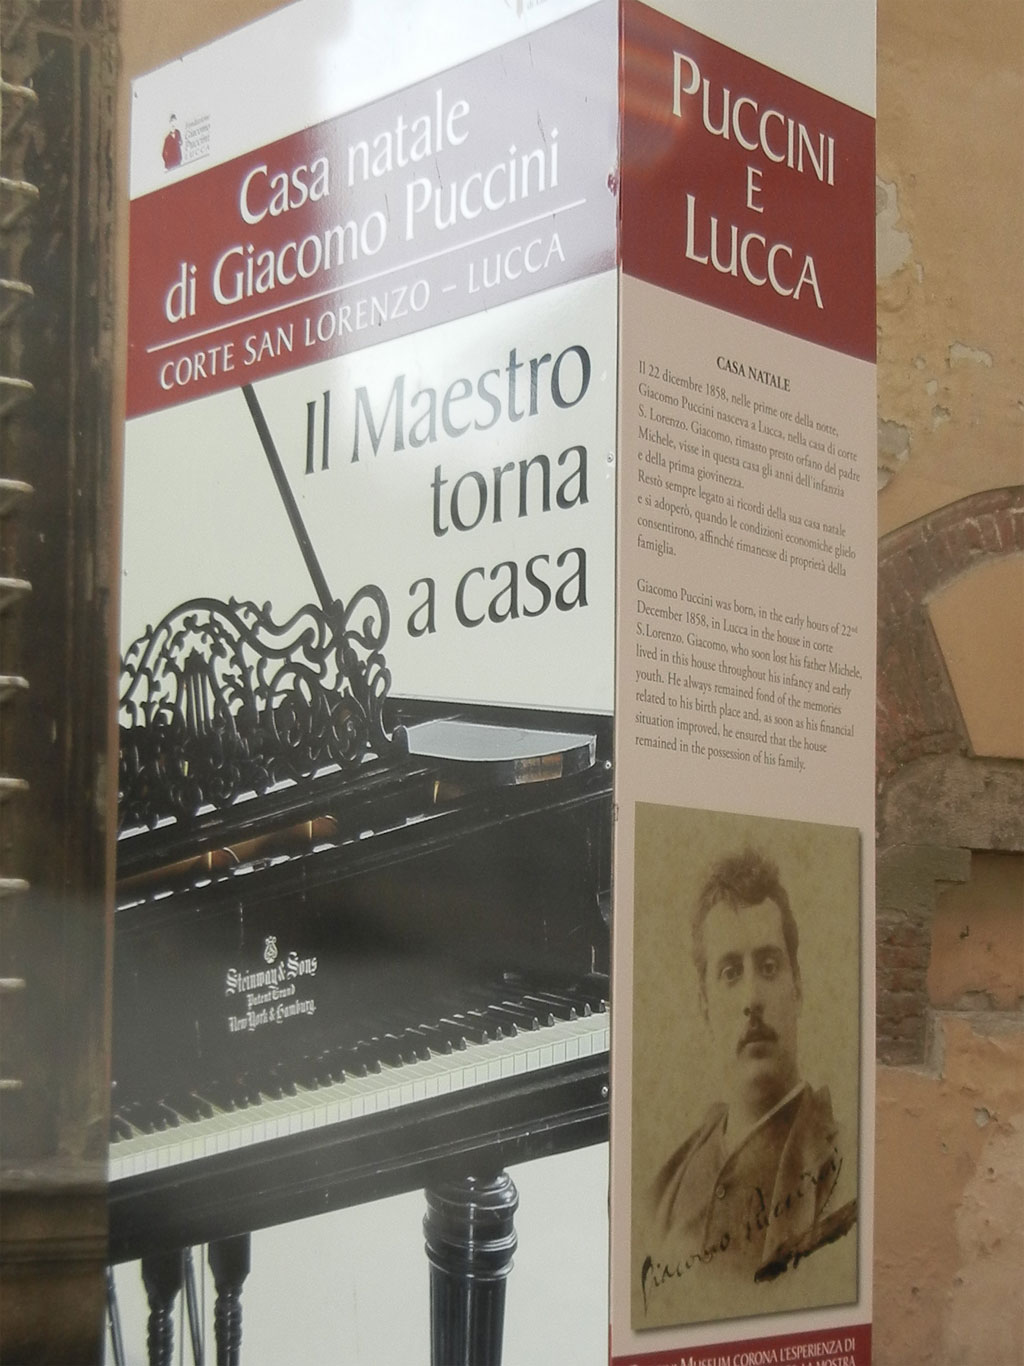 Lucca - Puccini house